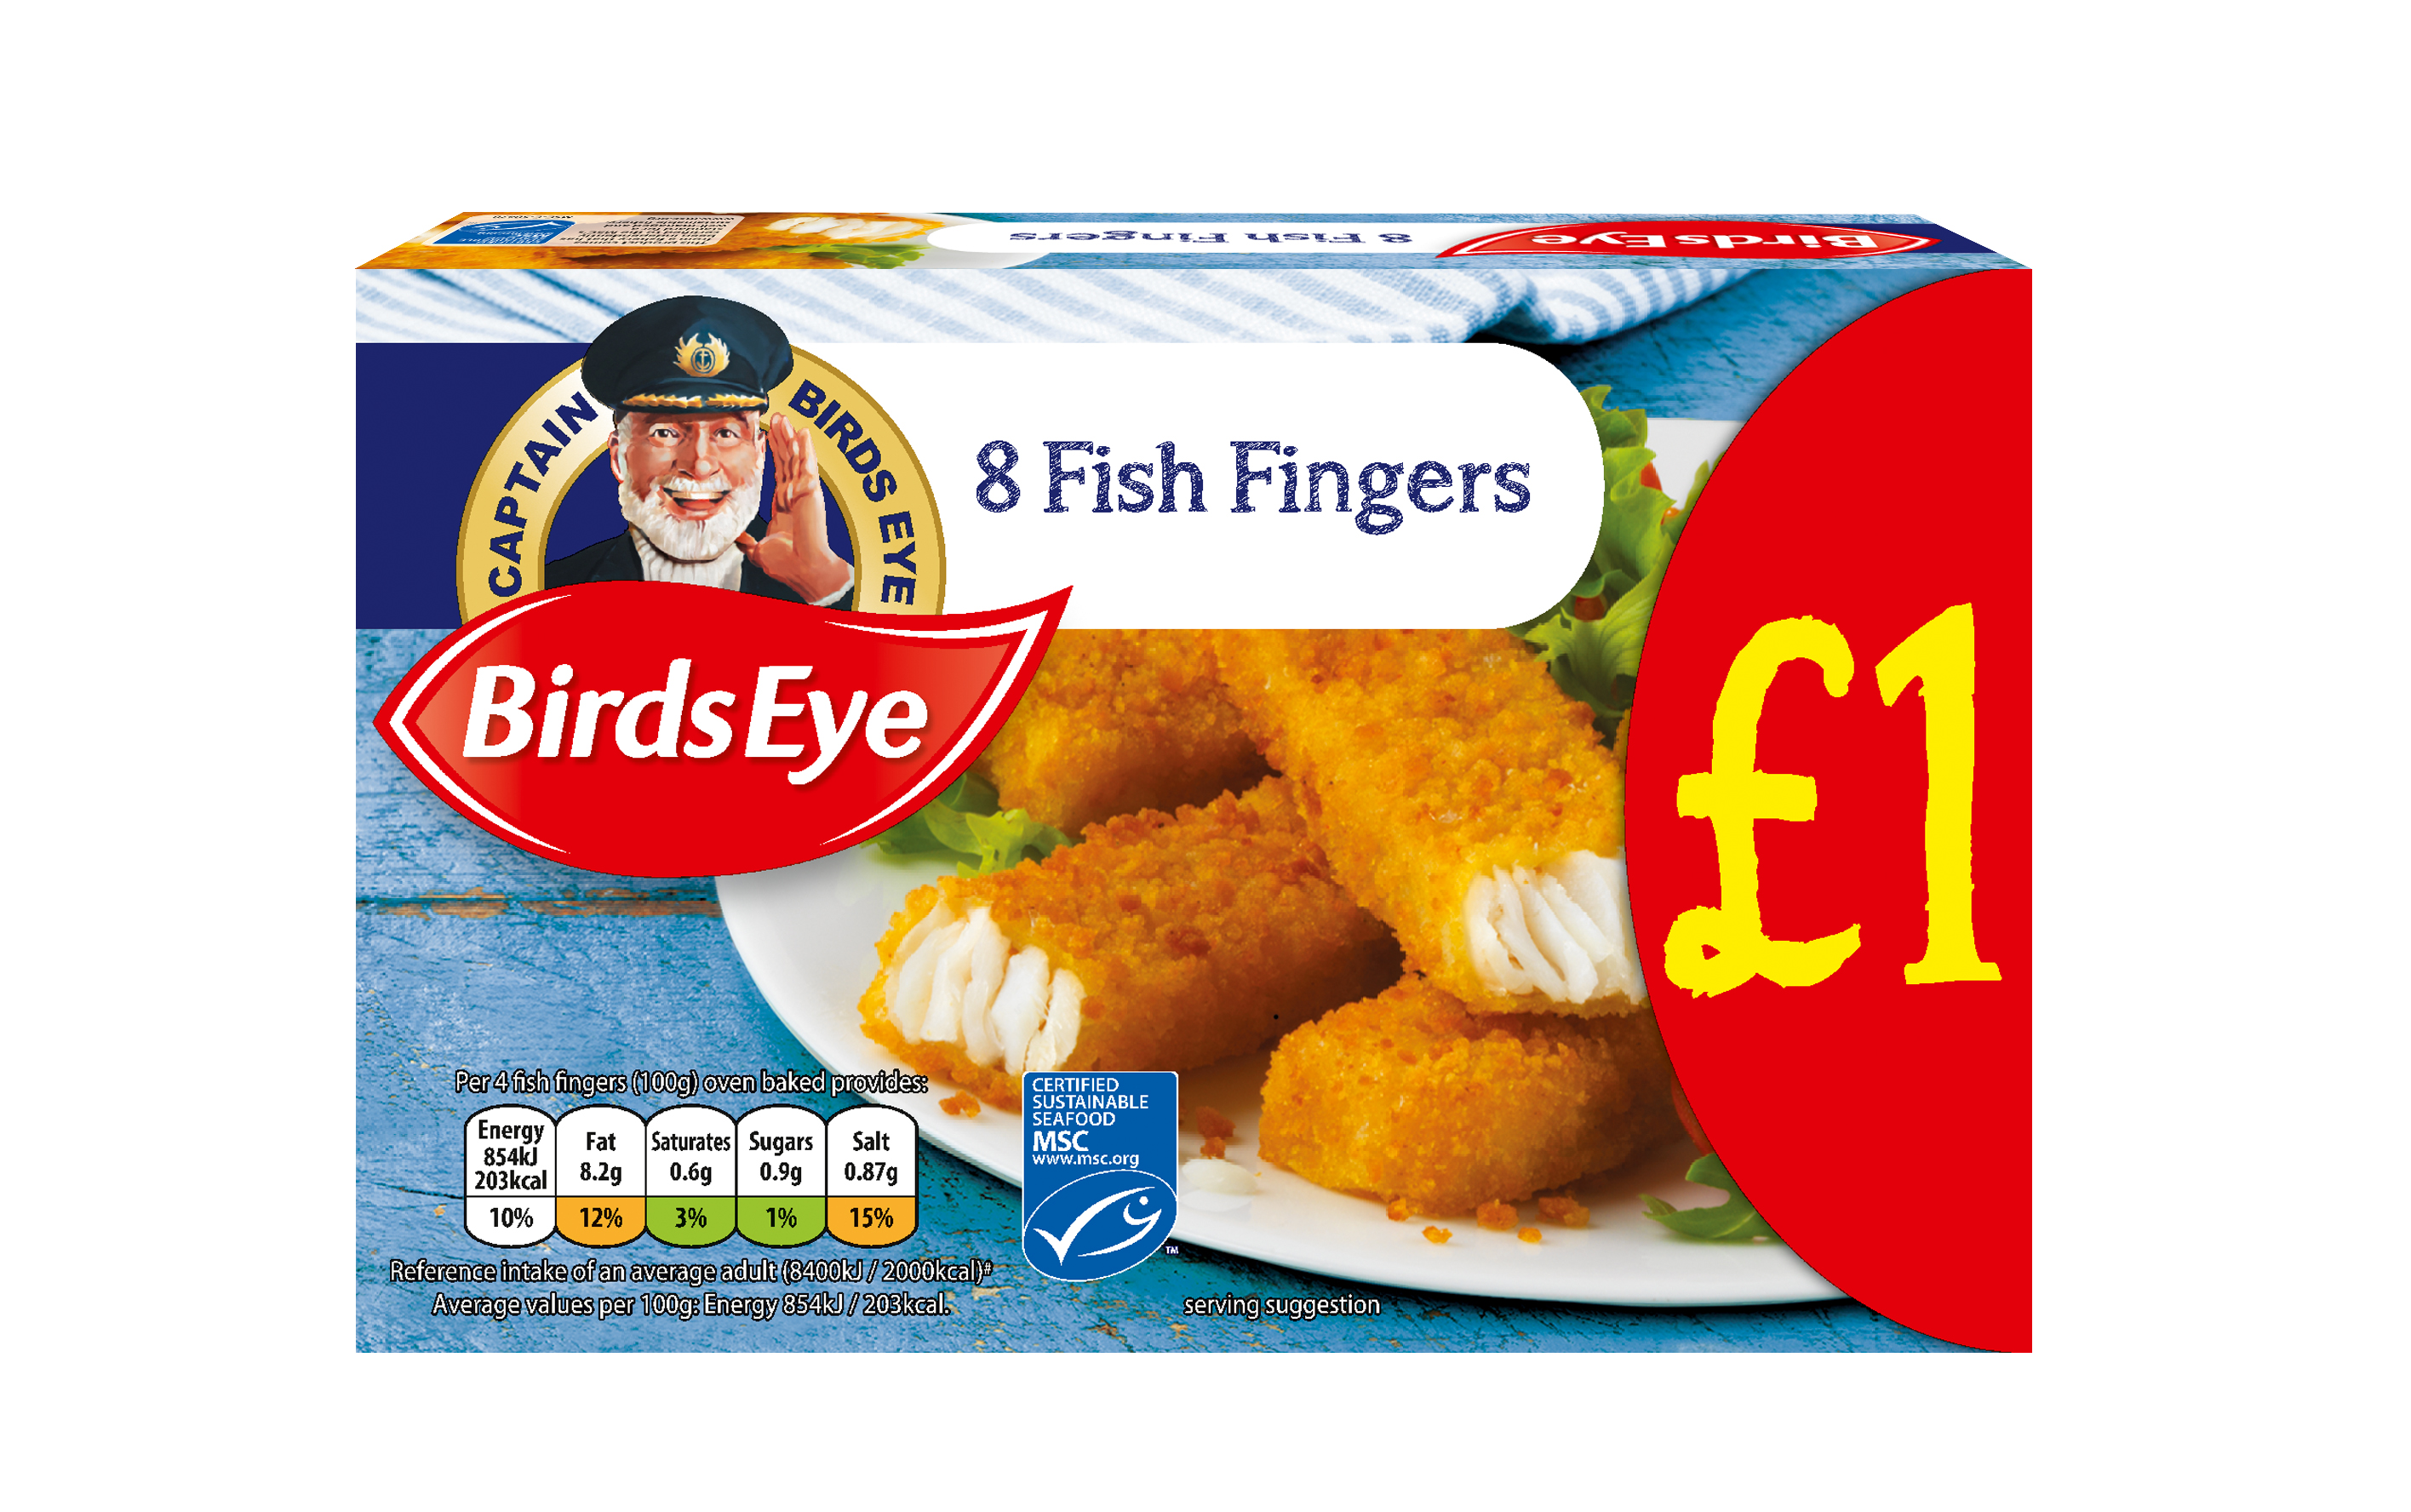 The hunt is on to find a real-life shopper to replace Captain Birds Eye on boxes of Fish Fingers